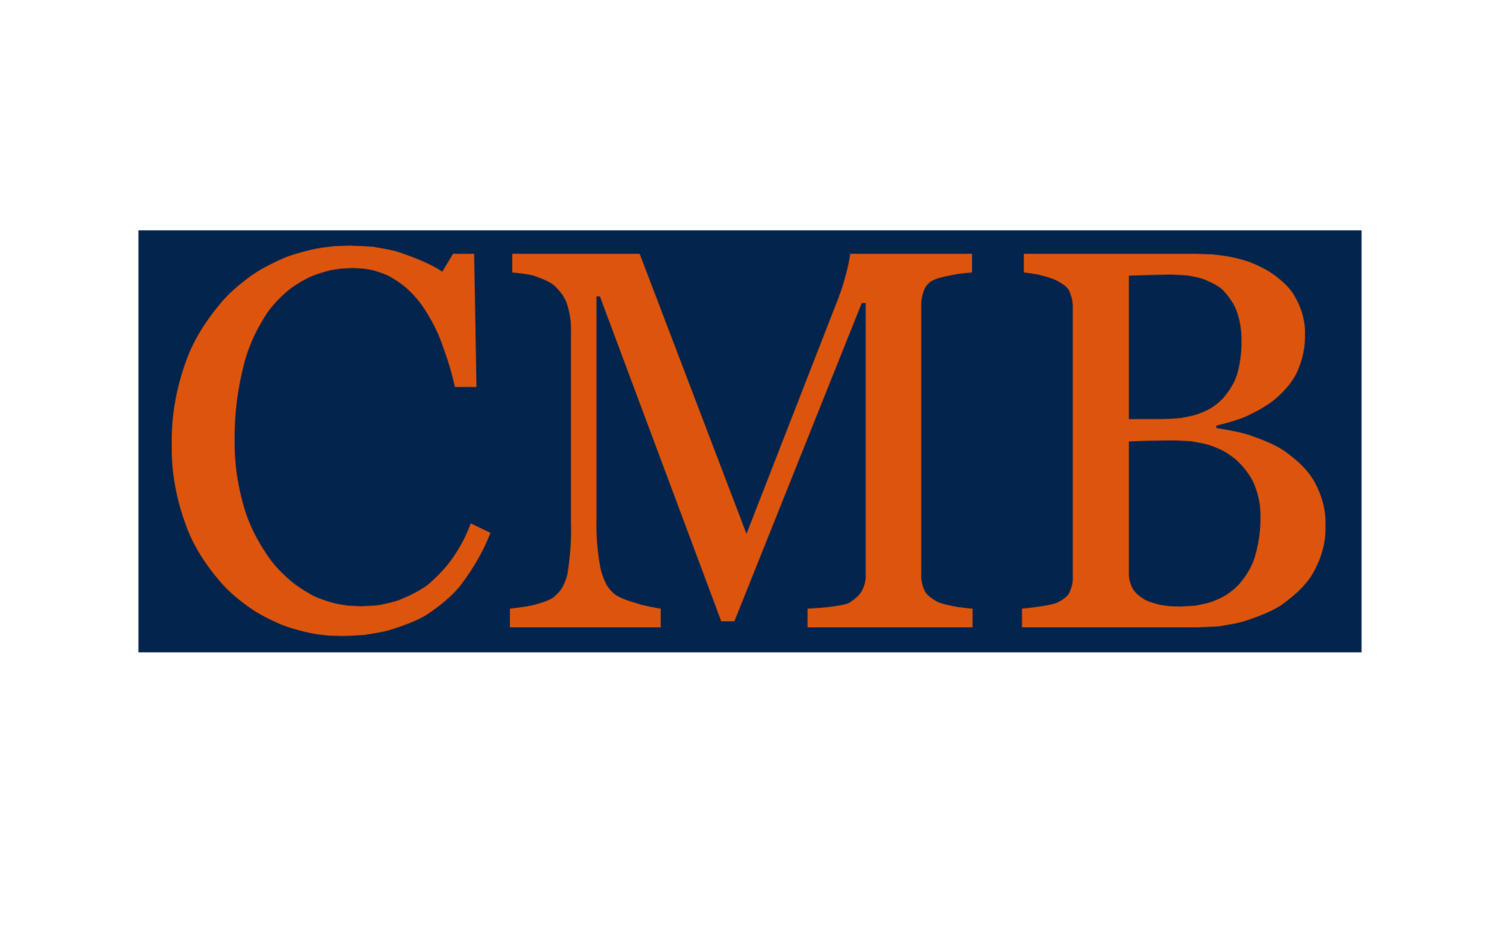 CMB Accounting, LLC